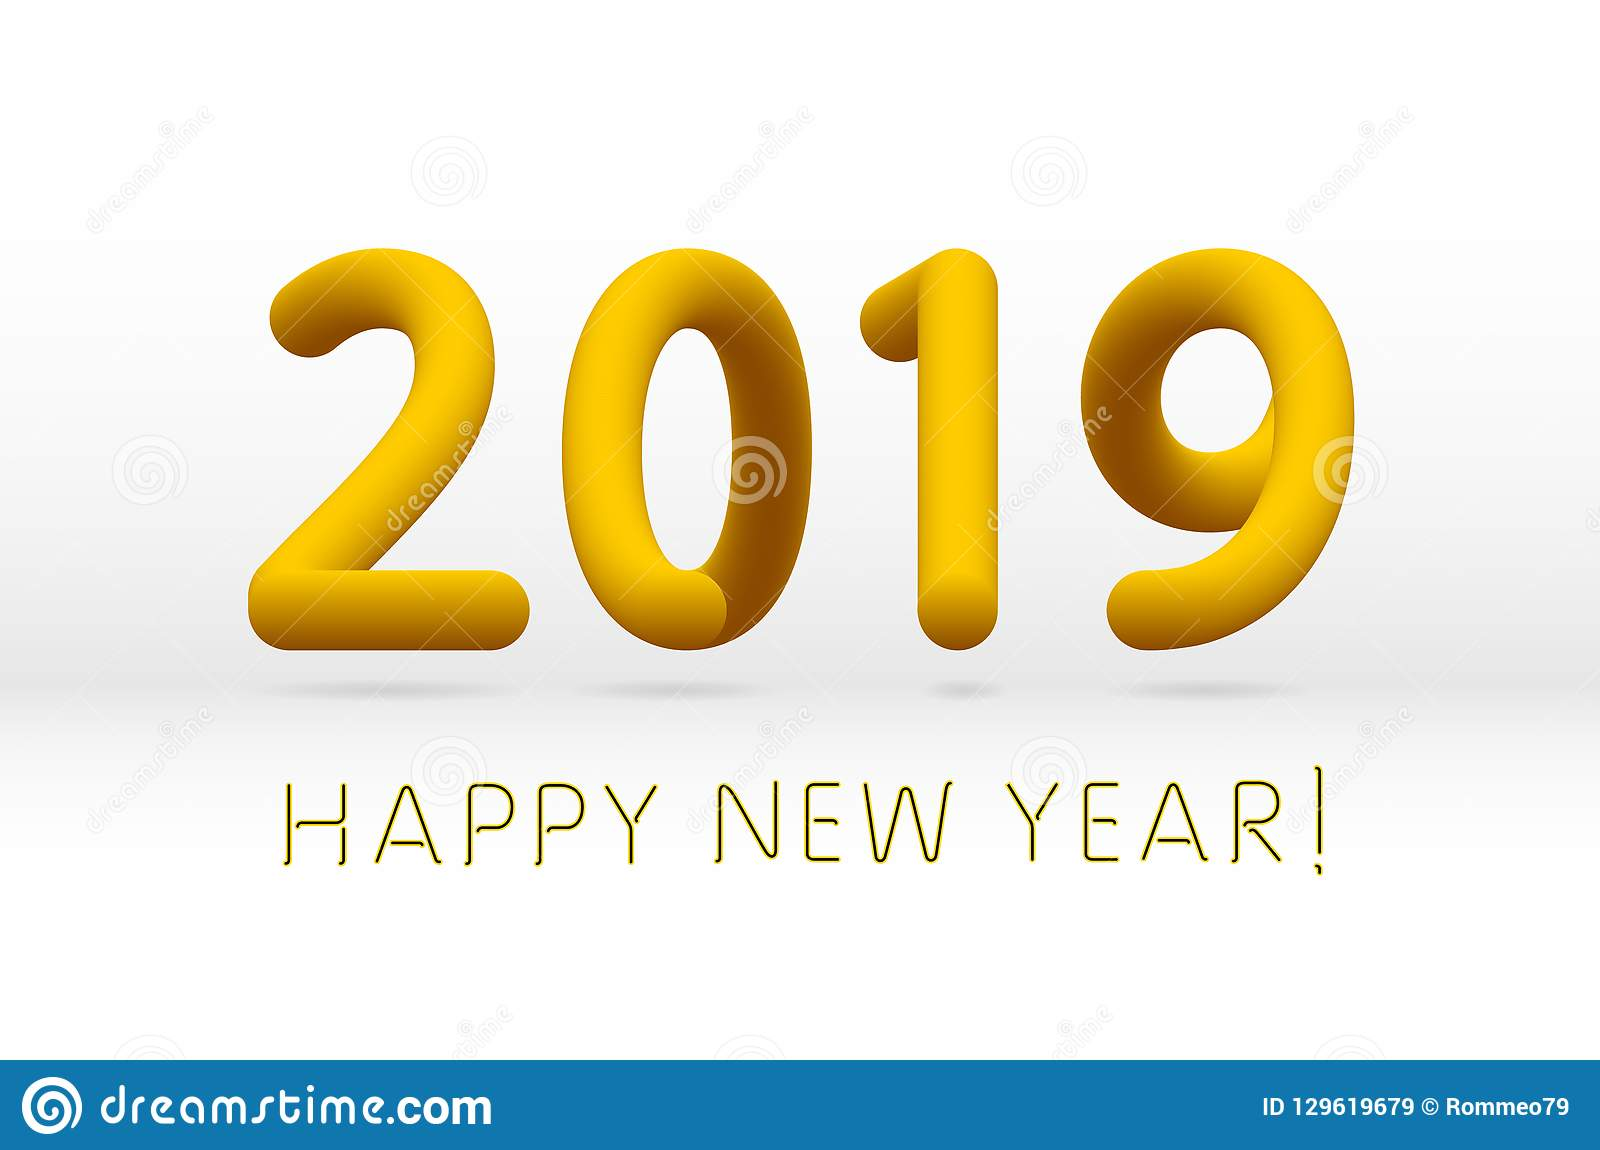 yellow 2019 symbol happy new year isolated on white background vector illustration